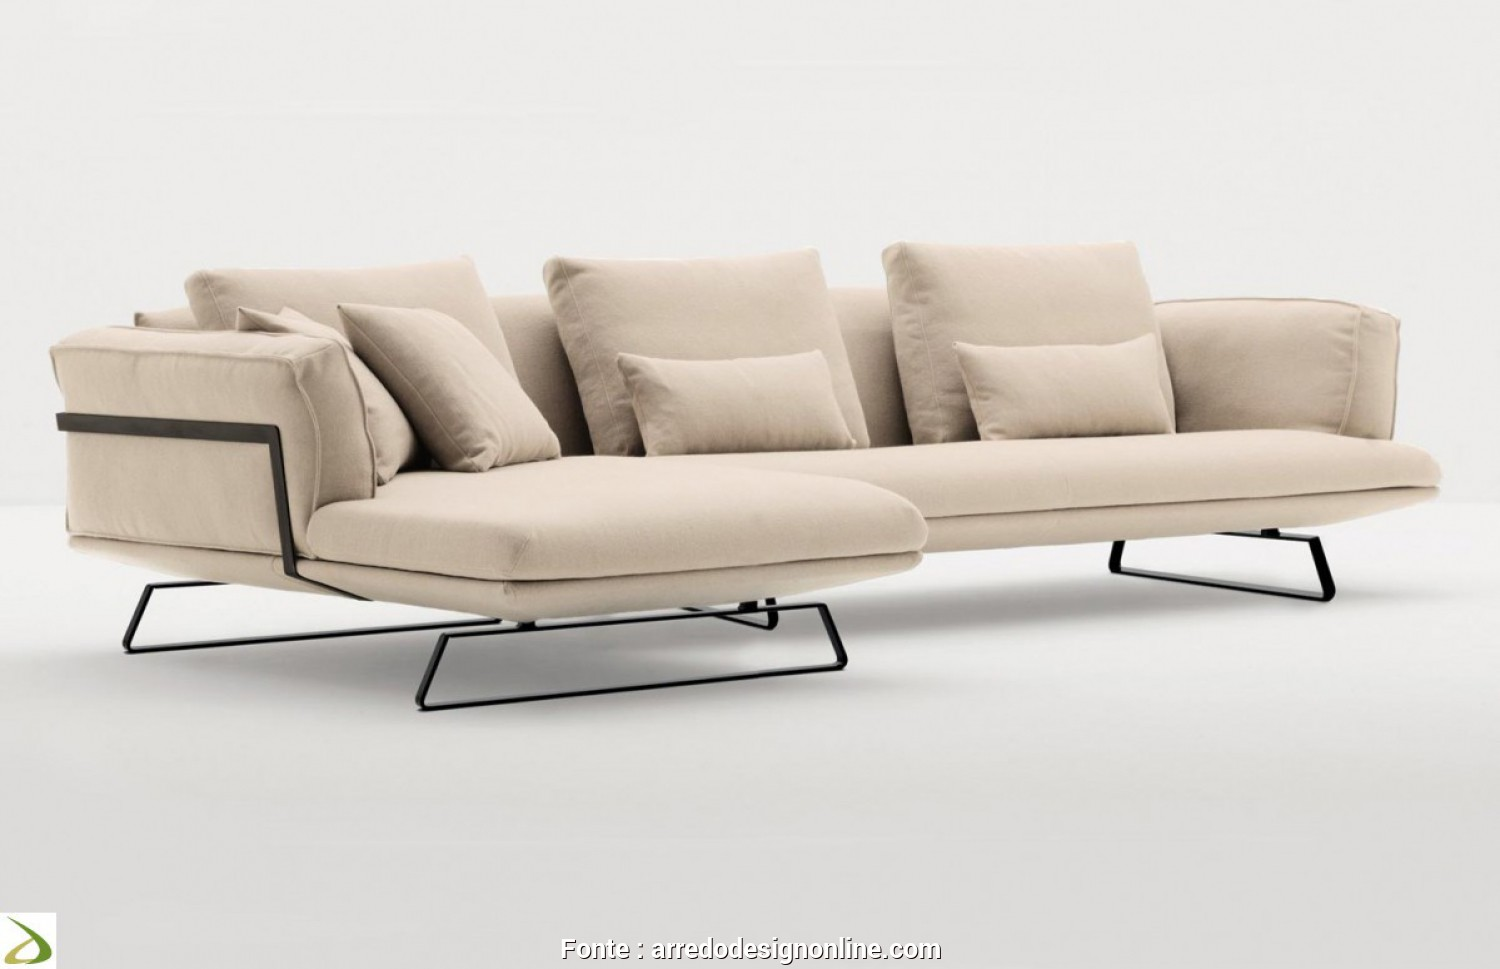 Elegante 6 Divano, Chaise Longue Design